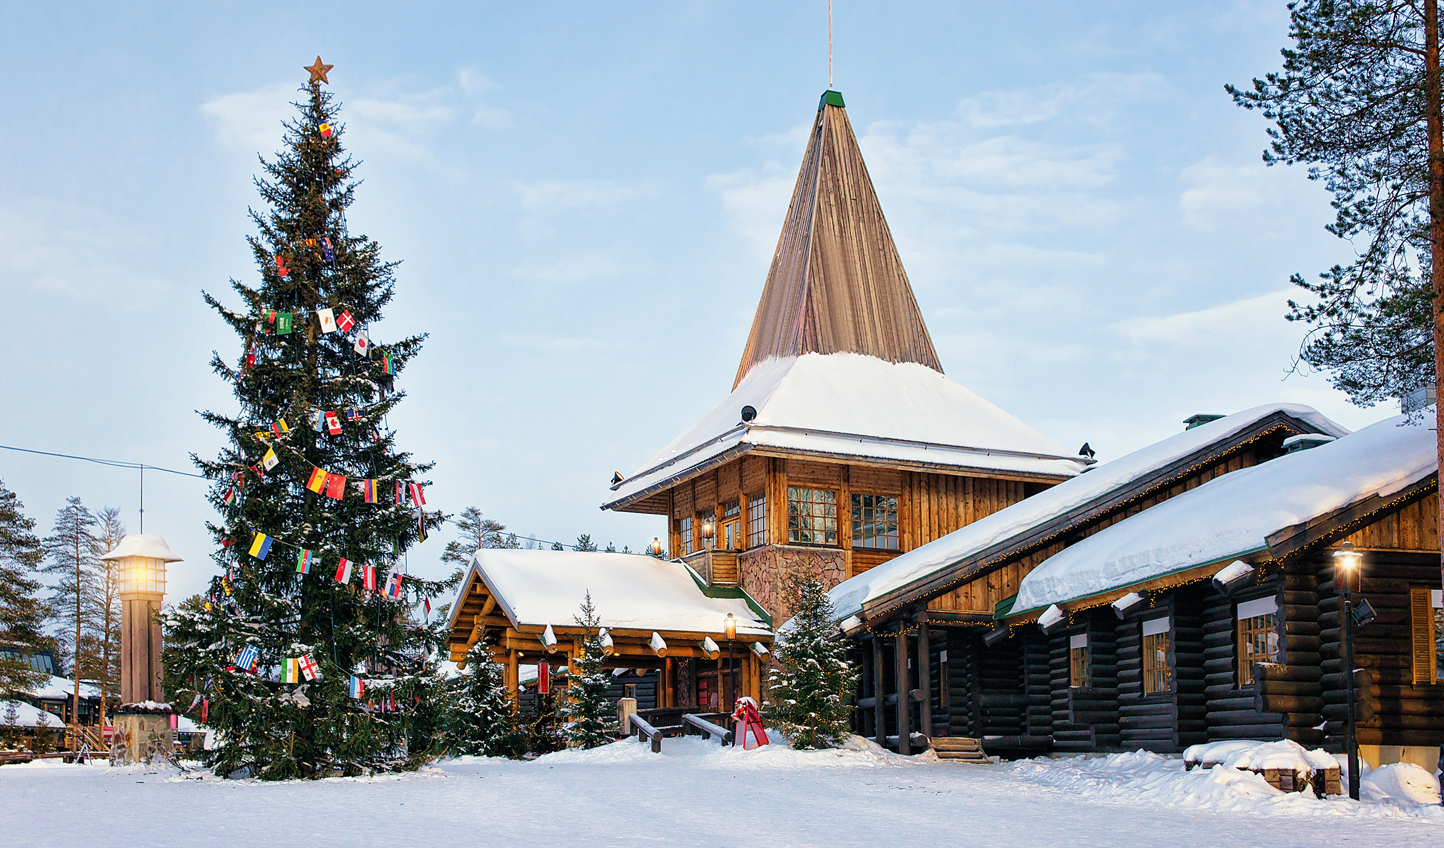 Visit Father Christmas in Santa Claus Village